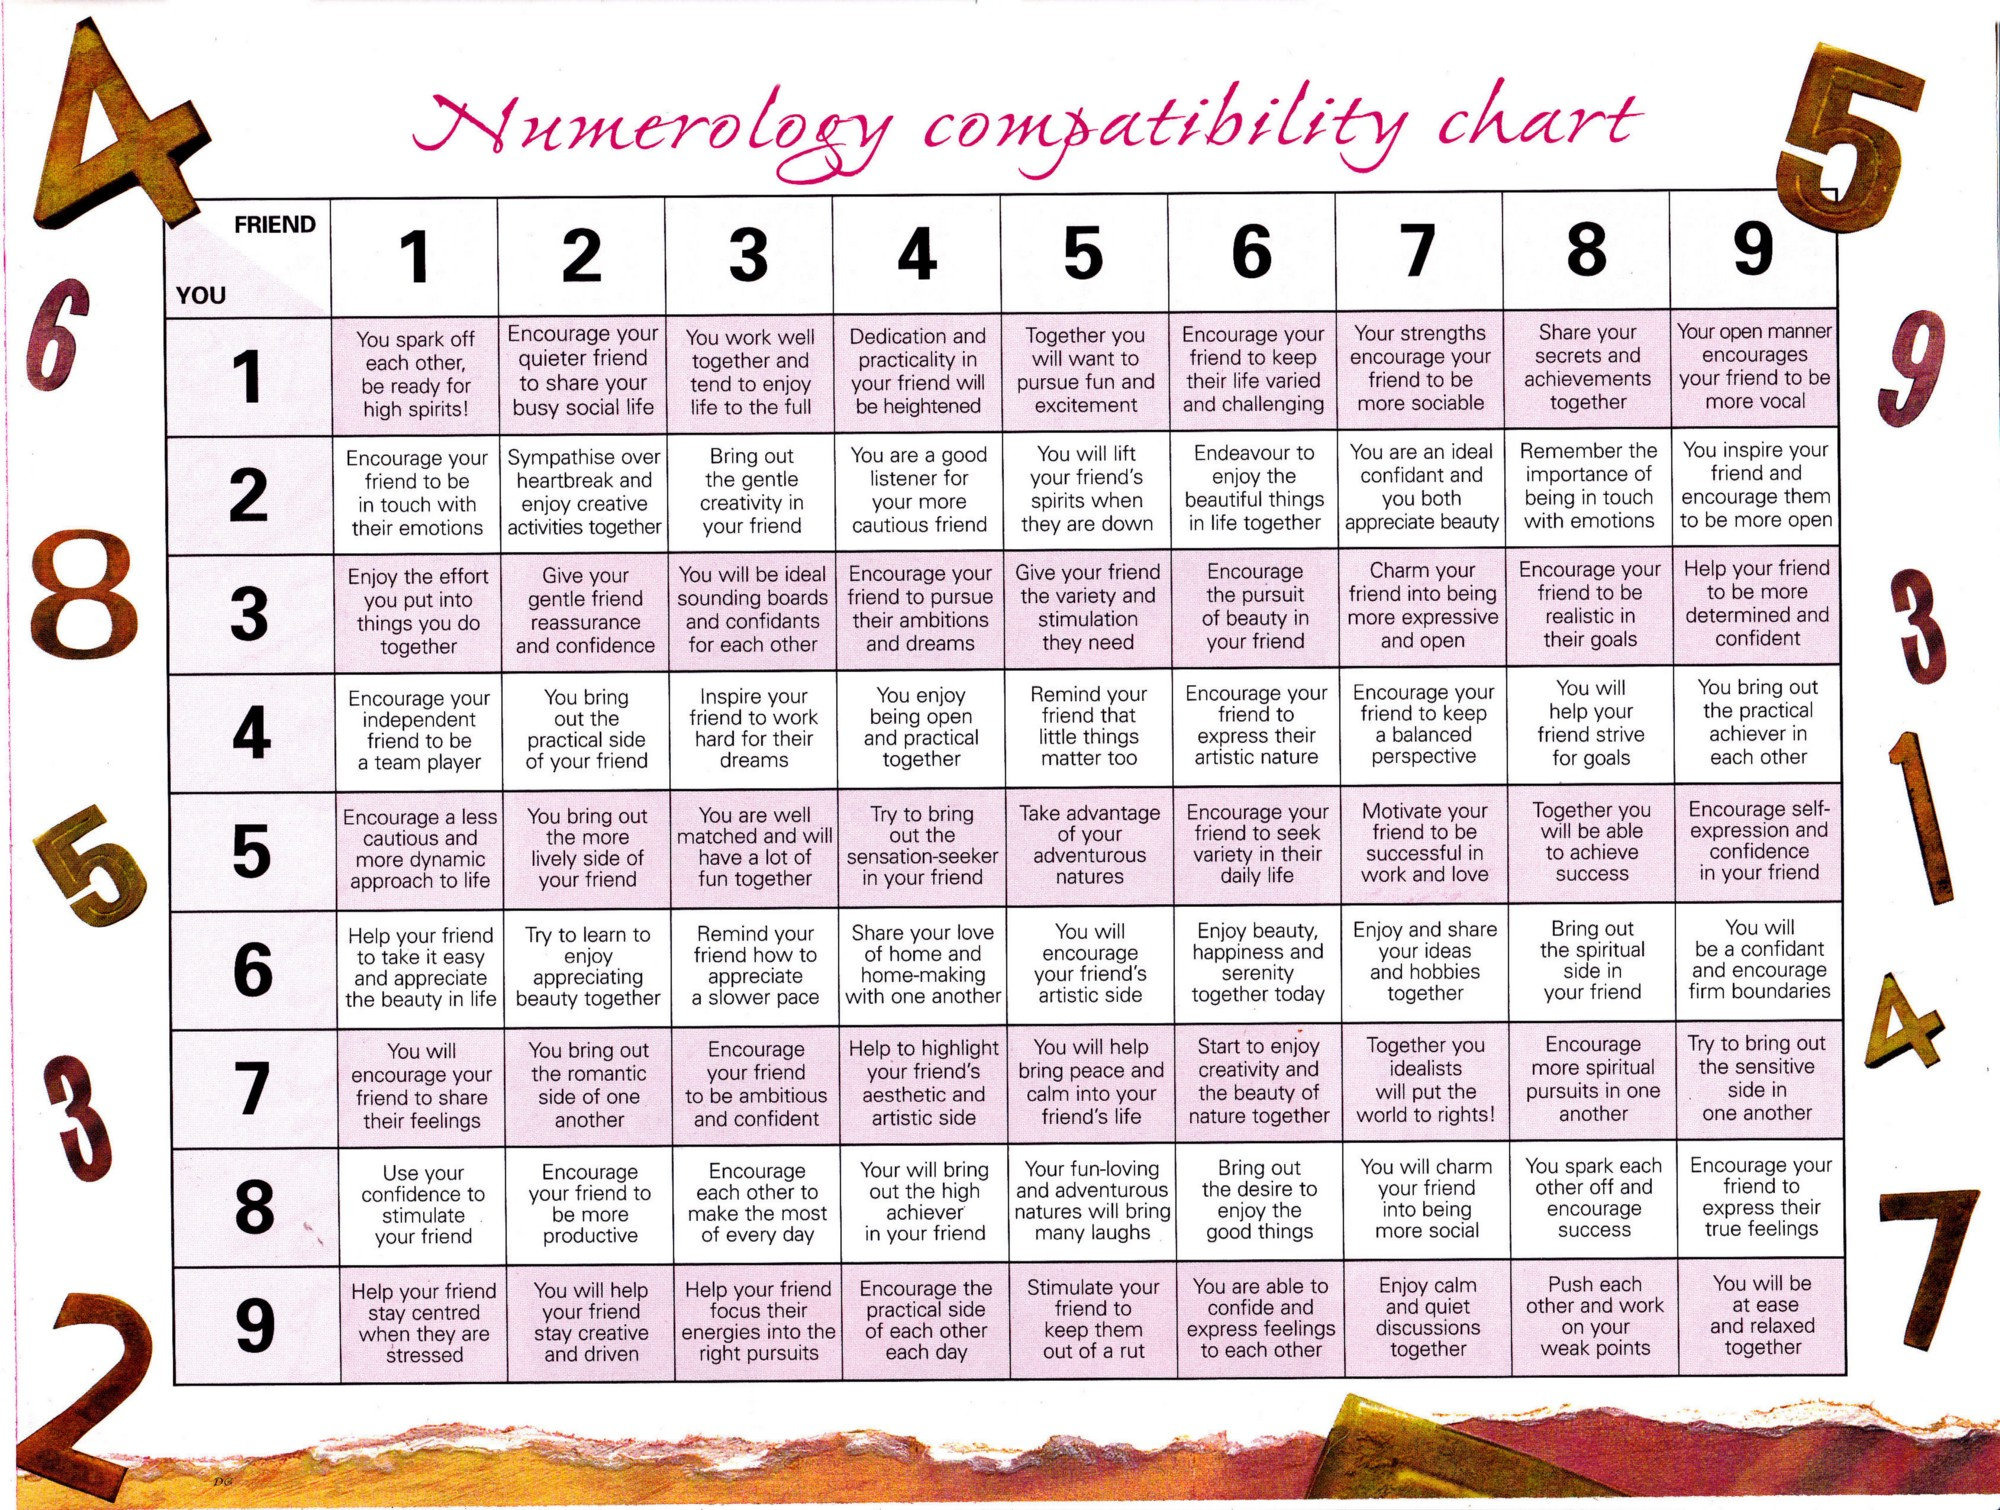 Free Numerology Reading, Numerology Compatibility Calculator Online